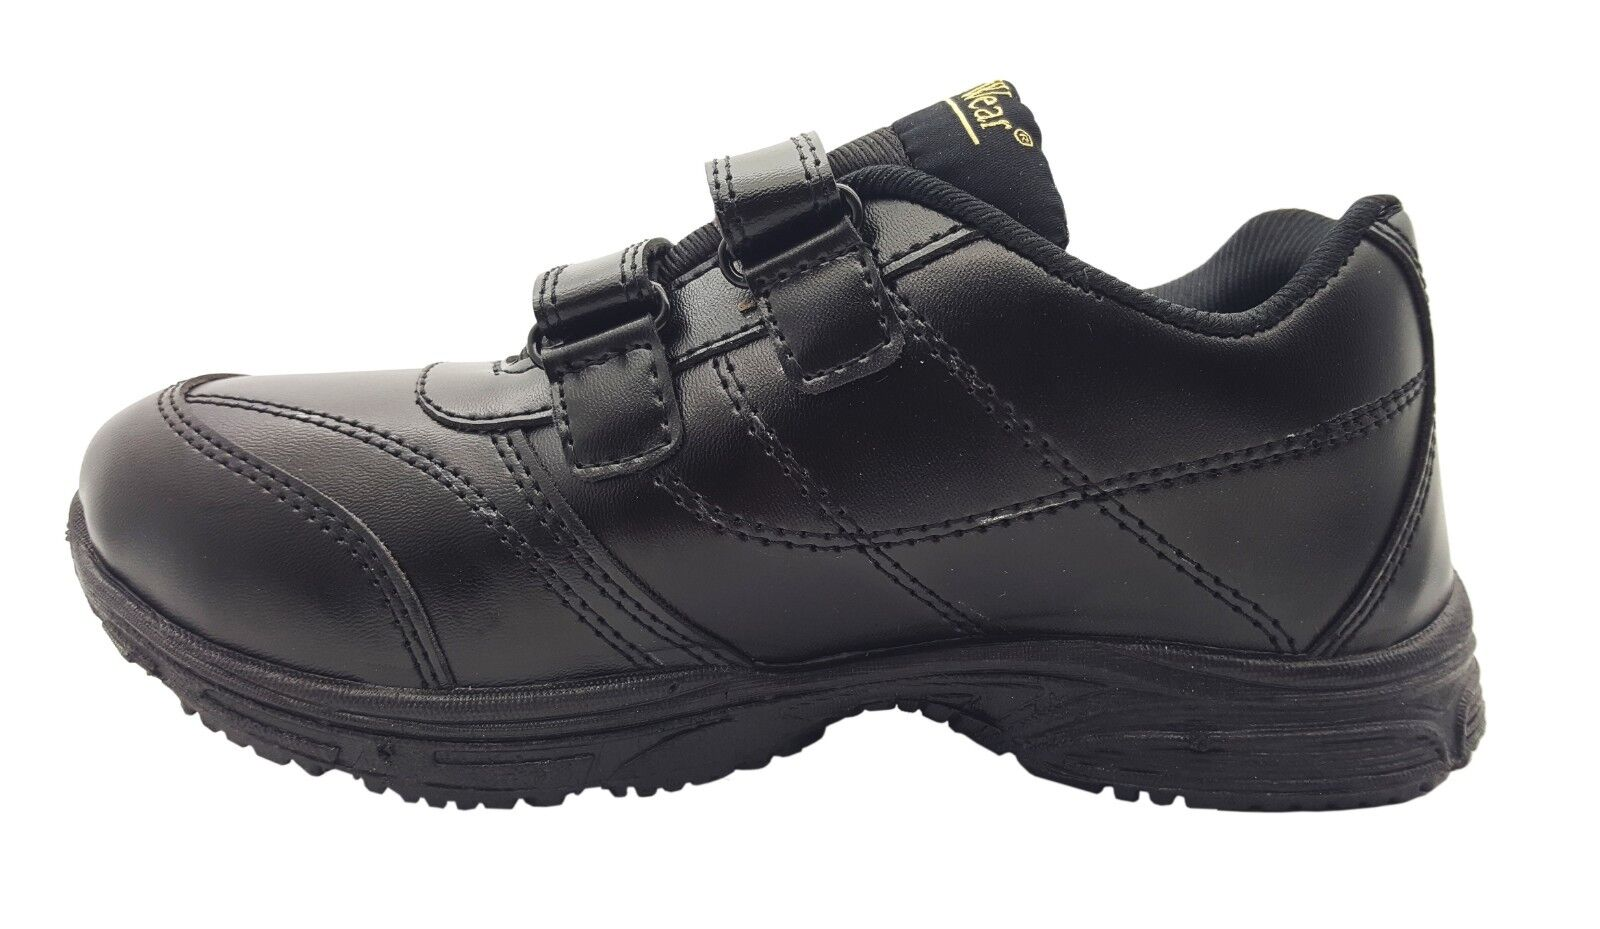 JC Dees Boys Back To School Shoes RipTape Strap N1056 UK size 11 to 4 R2B